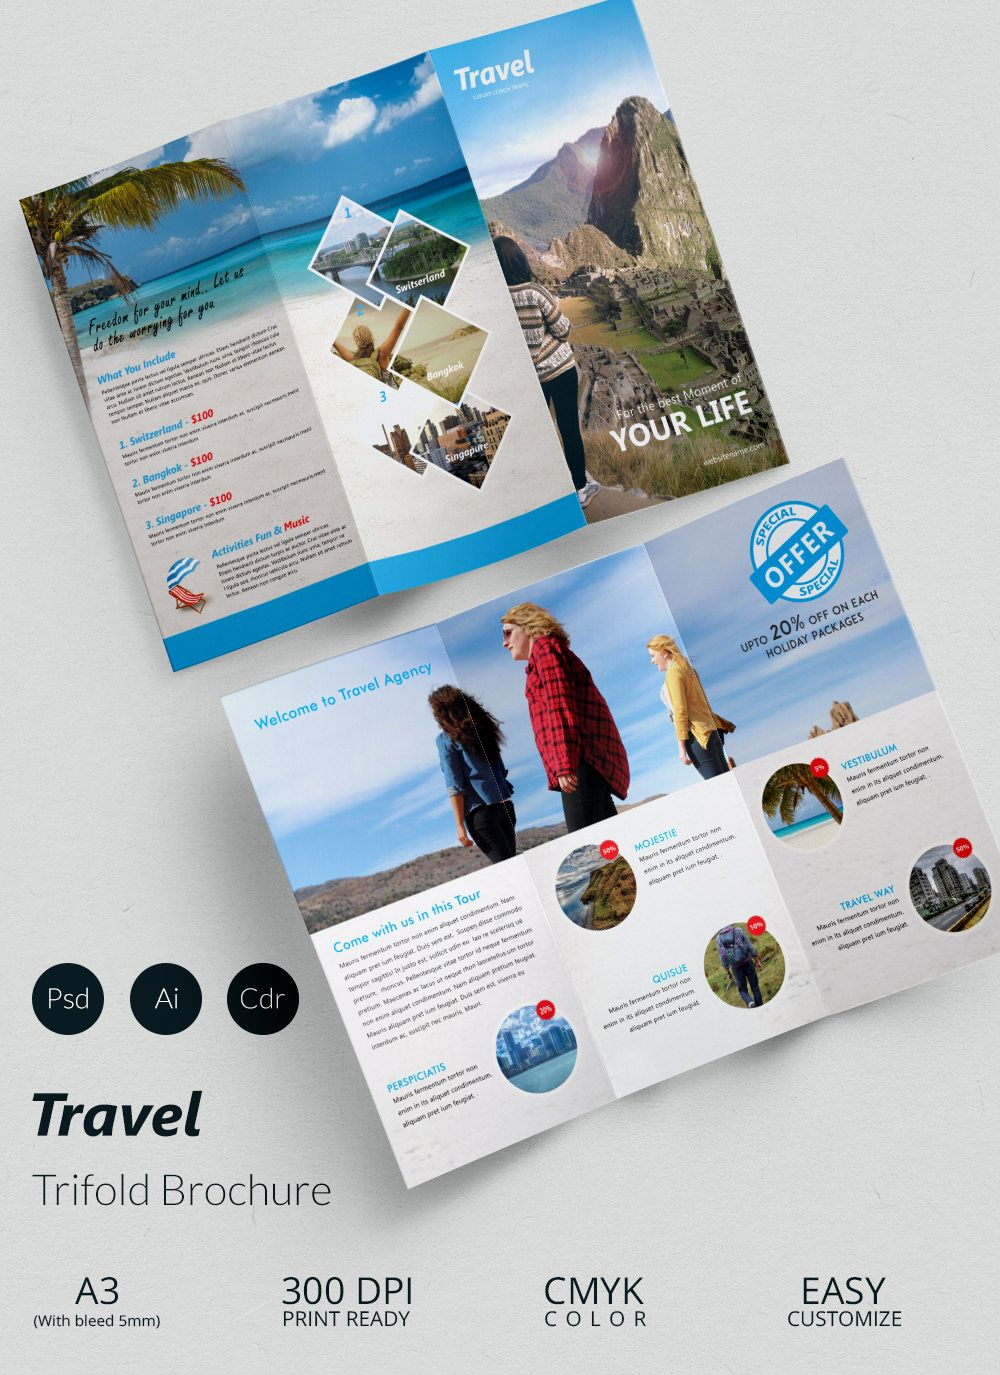 Travel A Trifold Brochure Template  Graphic Design Publishing